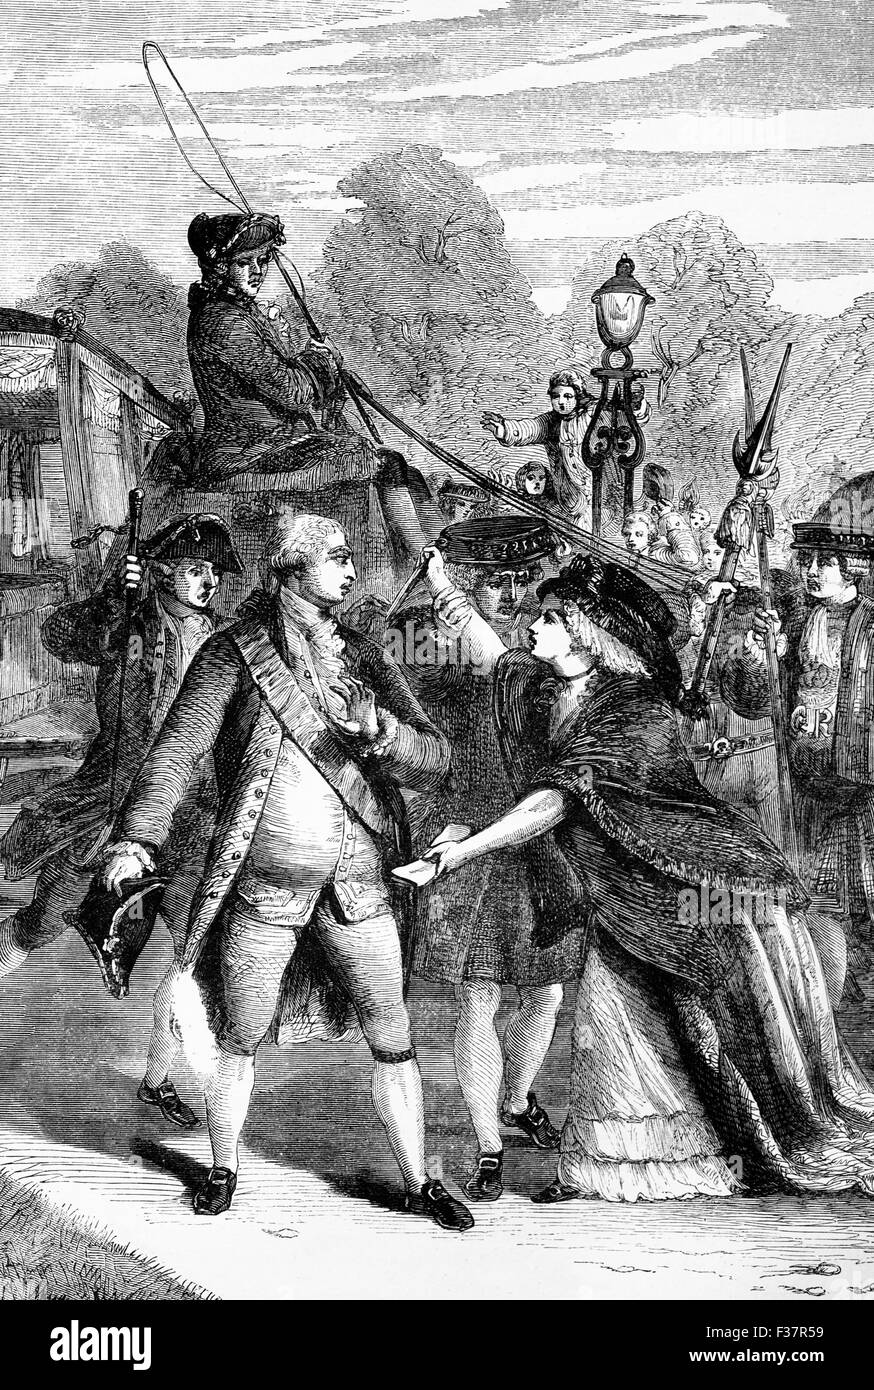 The attempted assassination in 1786 of King George III by  Mrs Margaret Nicholson, who was insane; the King survived. Stock Photo